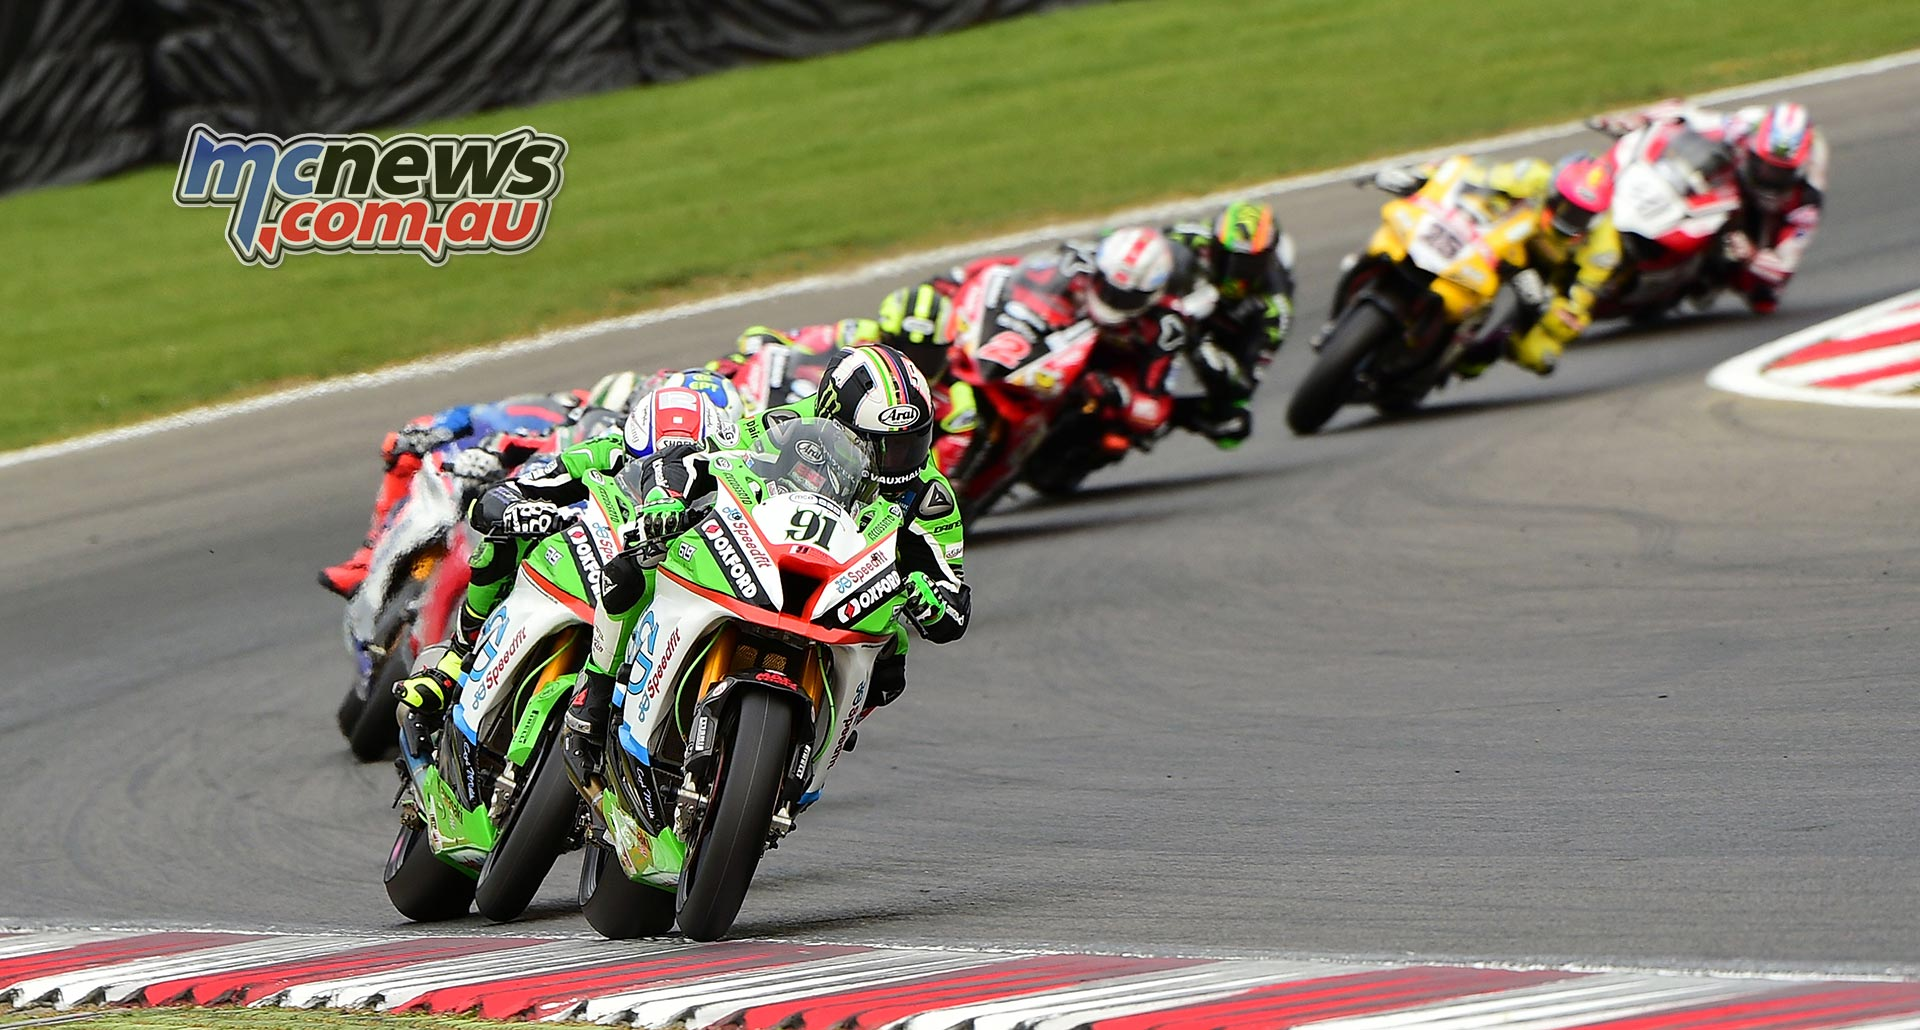 Leon Haslam at Brands Hatch